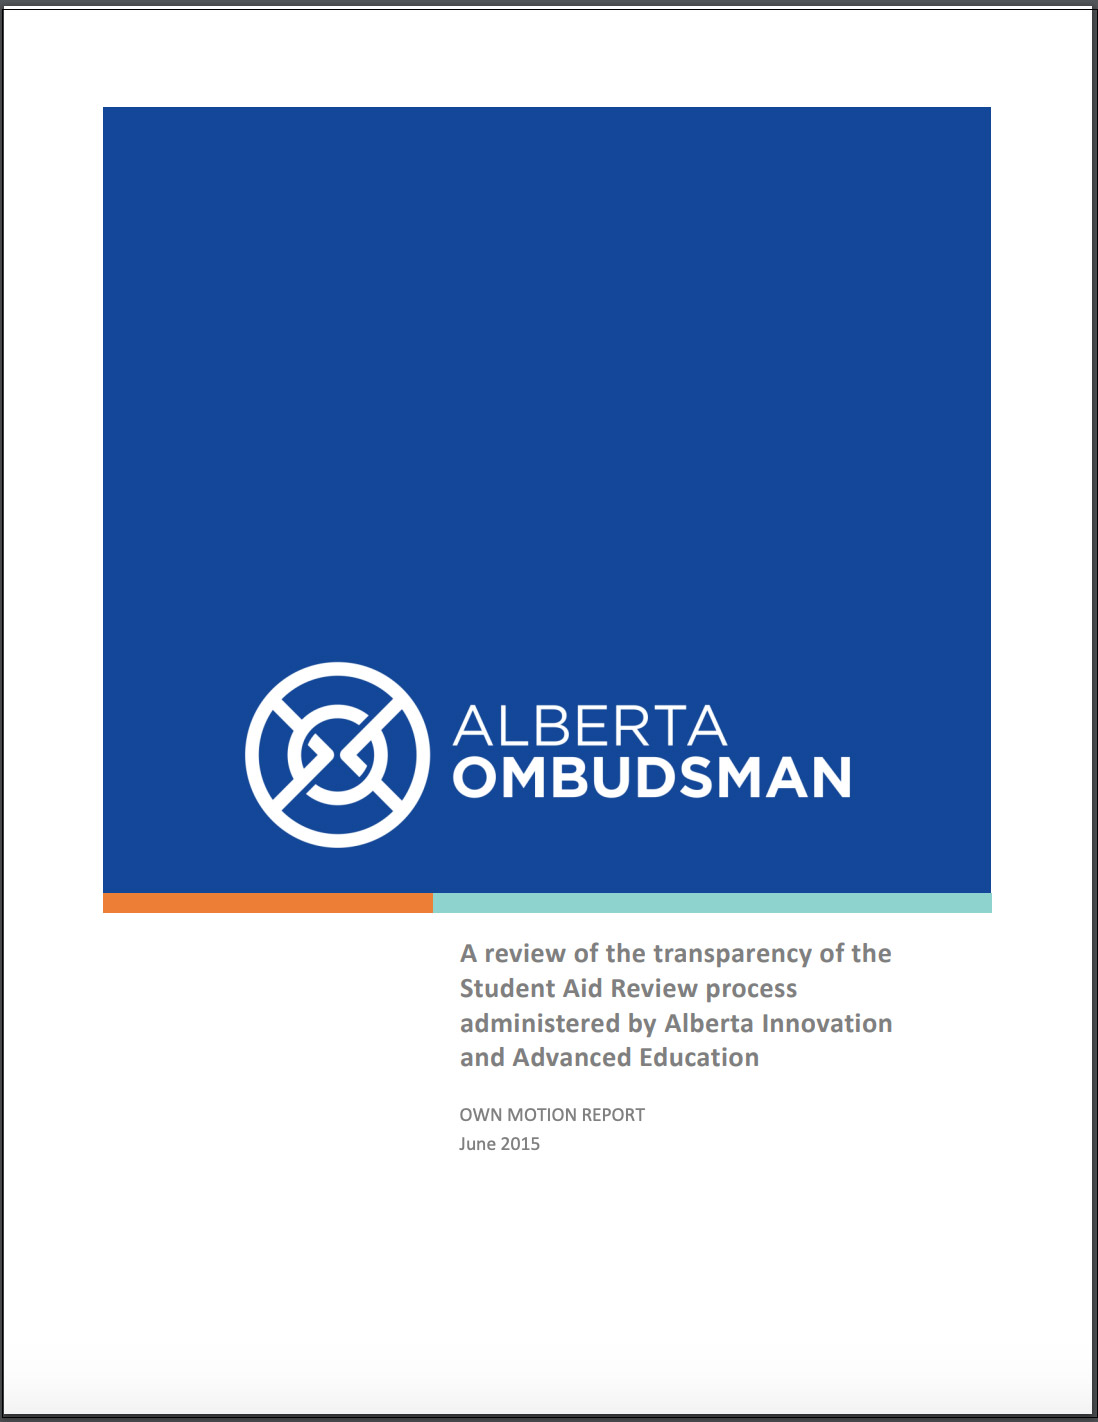 Ombudsman Transparency Student Aid Review